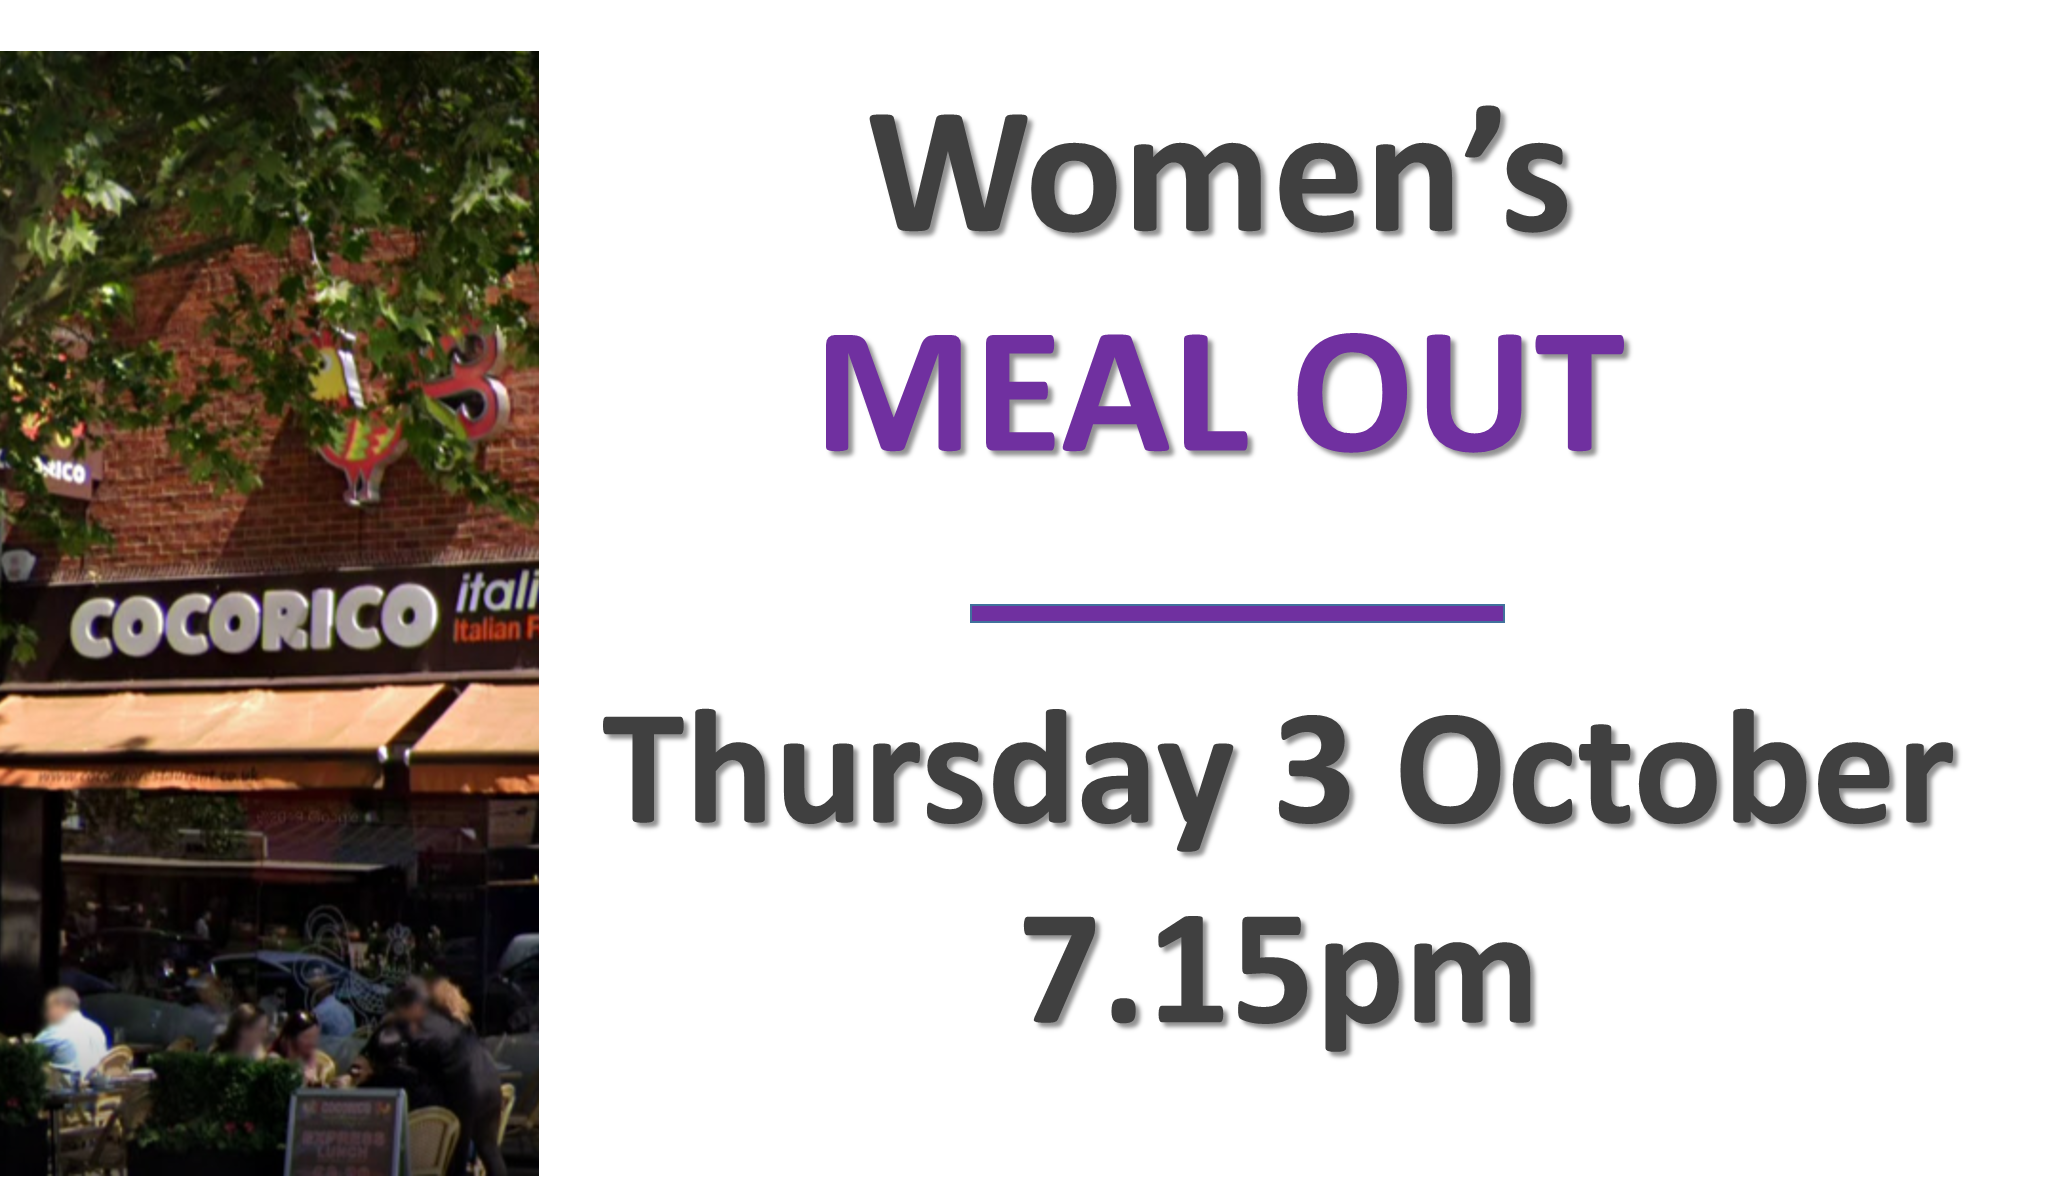 womens meal out